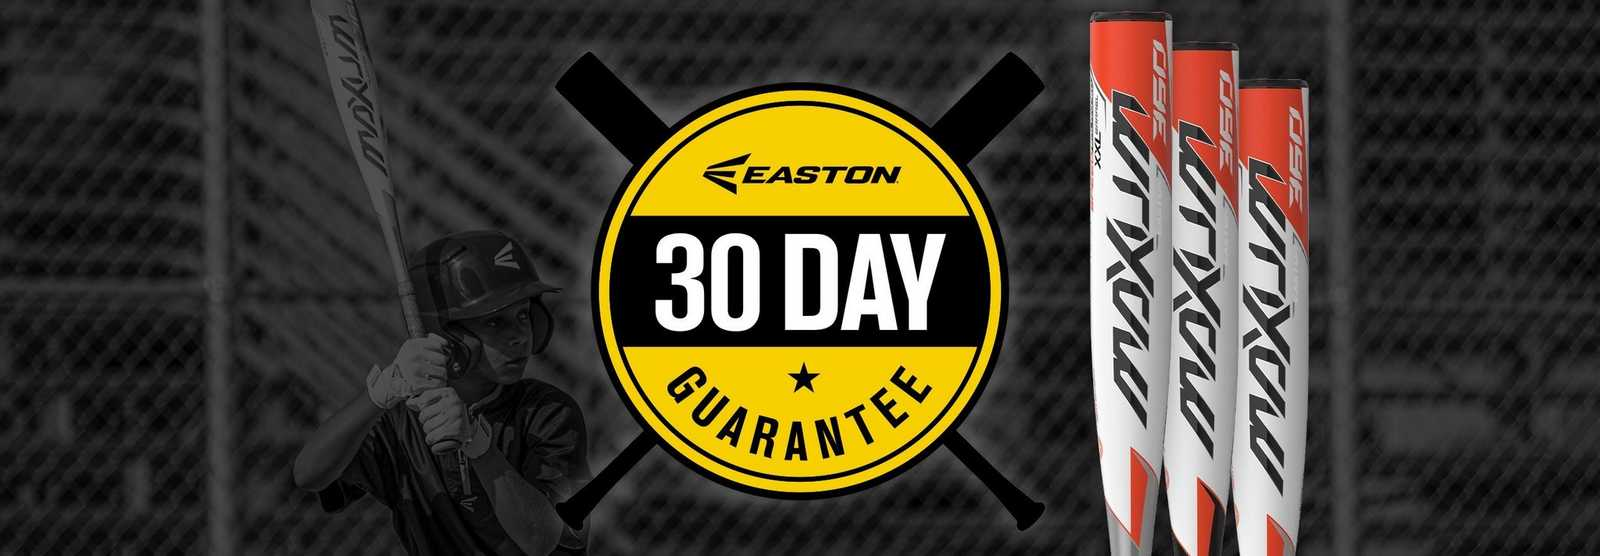 usssa-maxum-30-day-guarantee